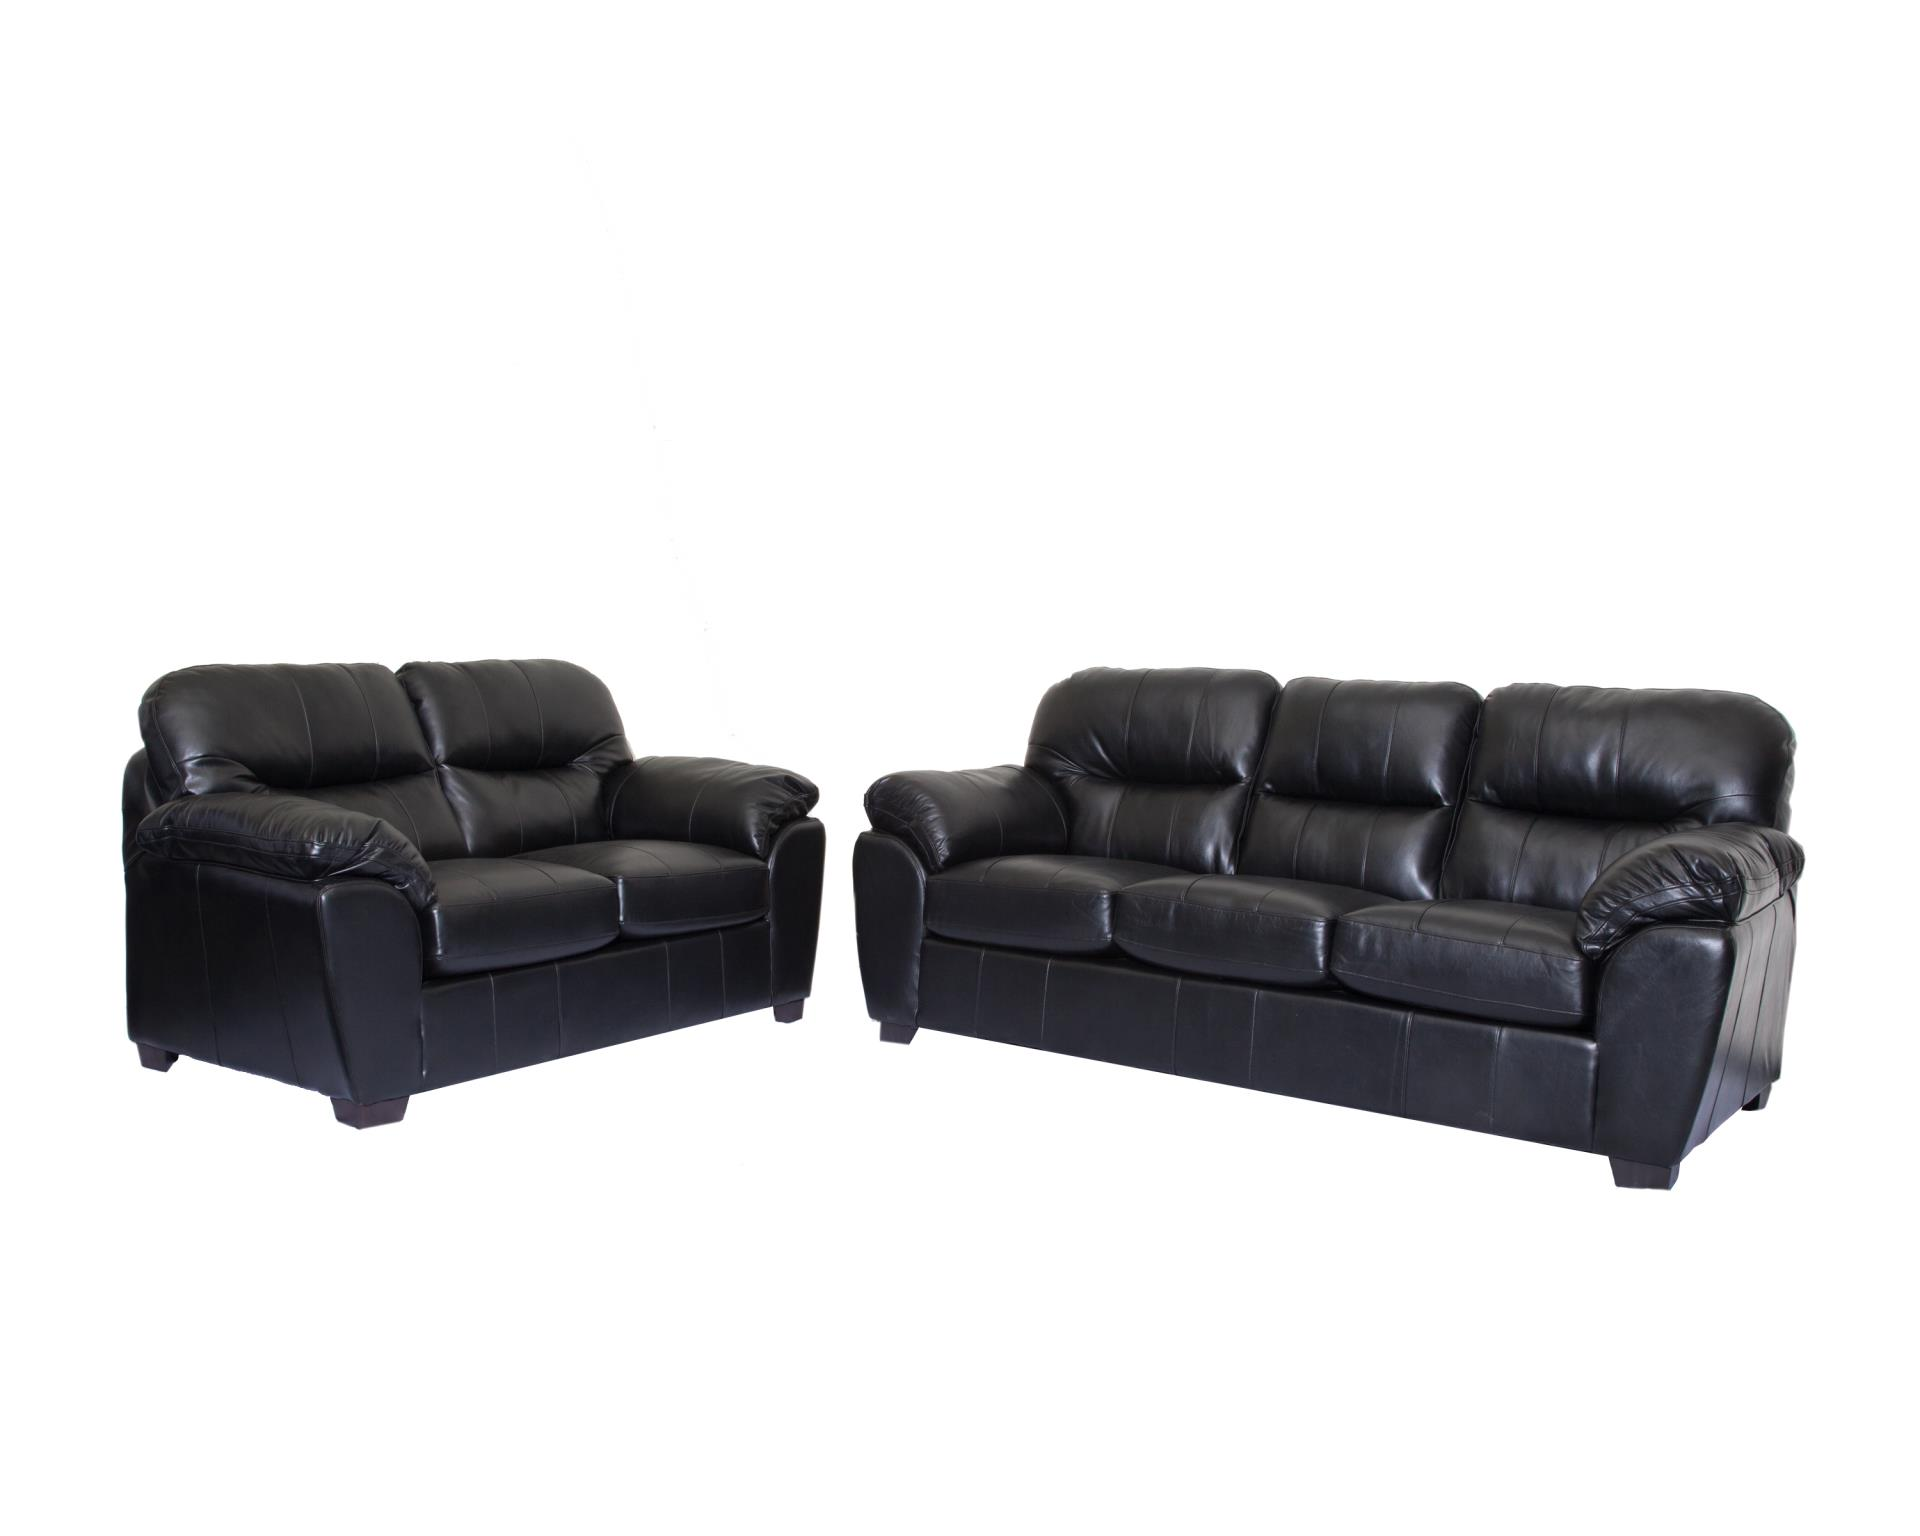 1601 Leather Gel Brown Or Black Sofa And Loveseat Made In Canada Affordable